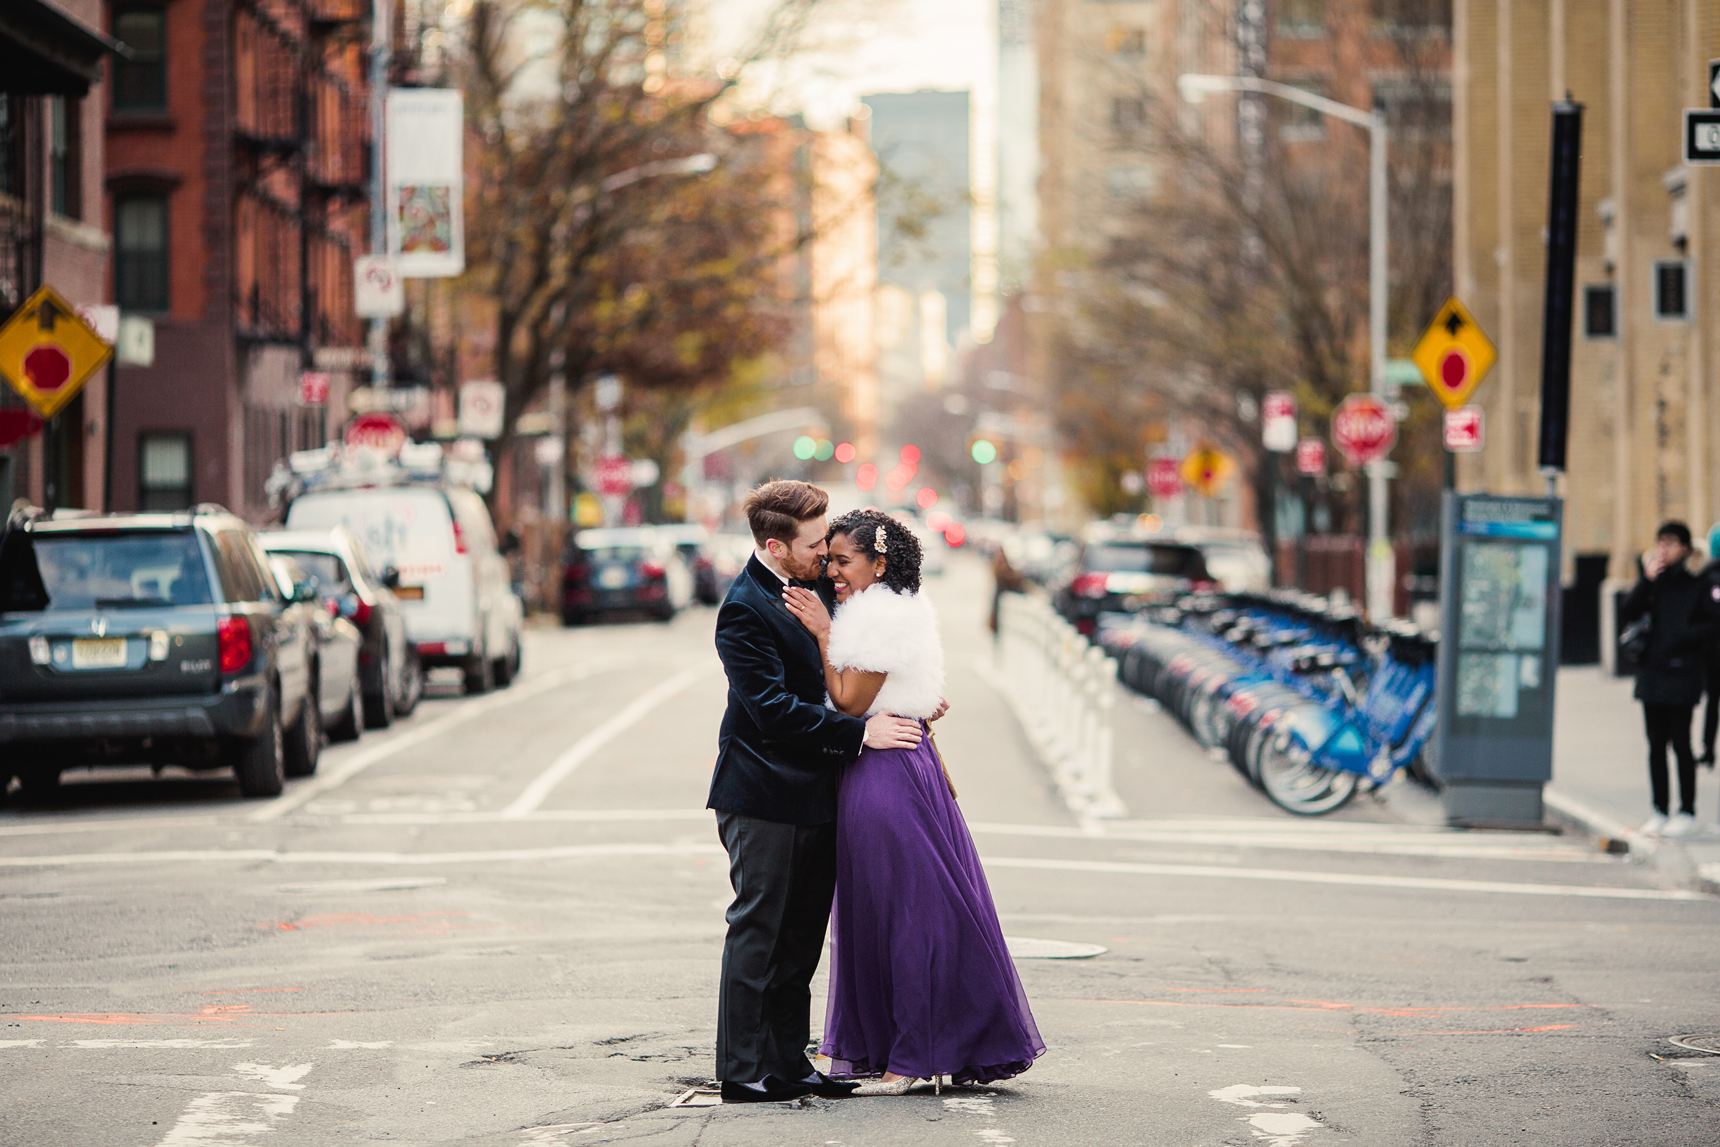 KP_BrooklynWinery_Wedding_NewYork_Photographer060.jpg